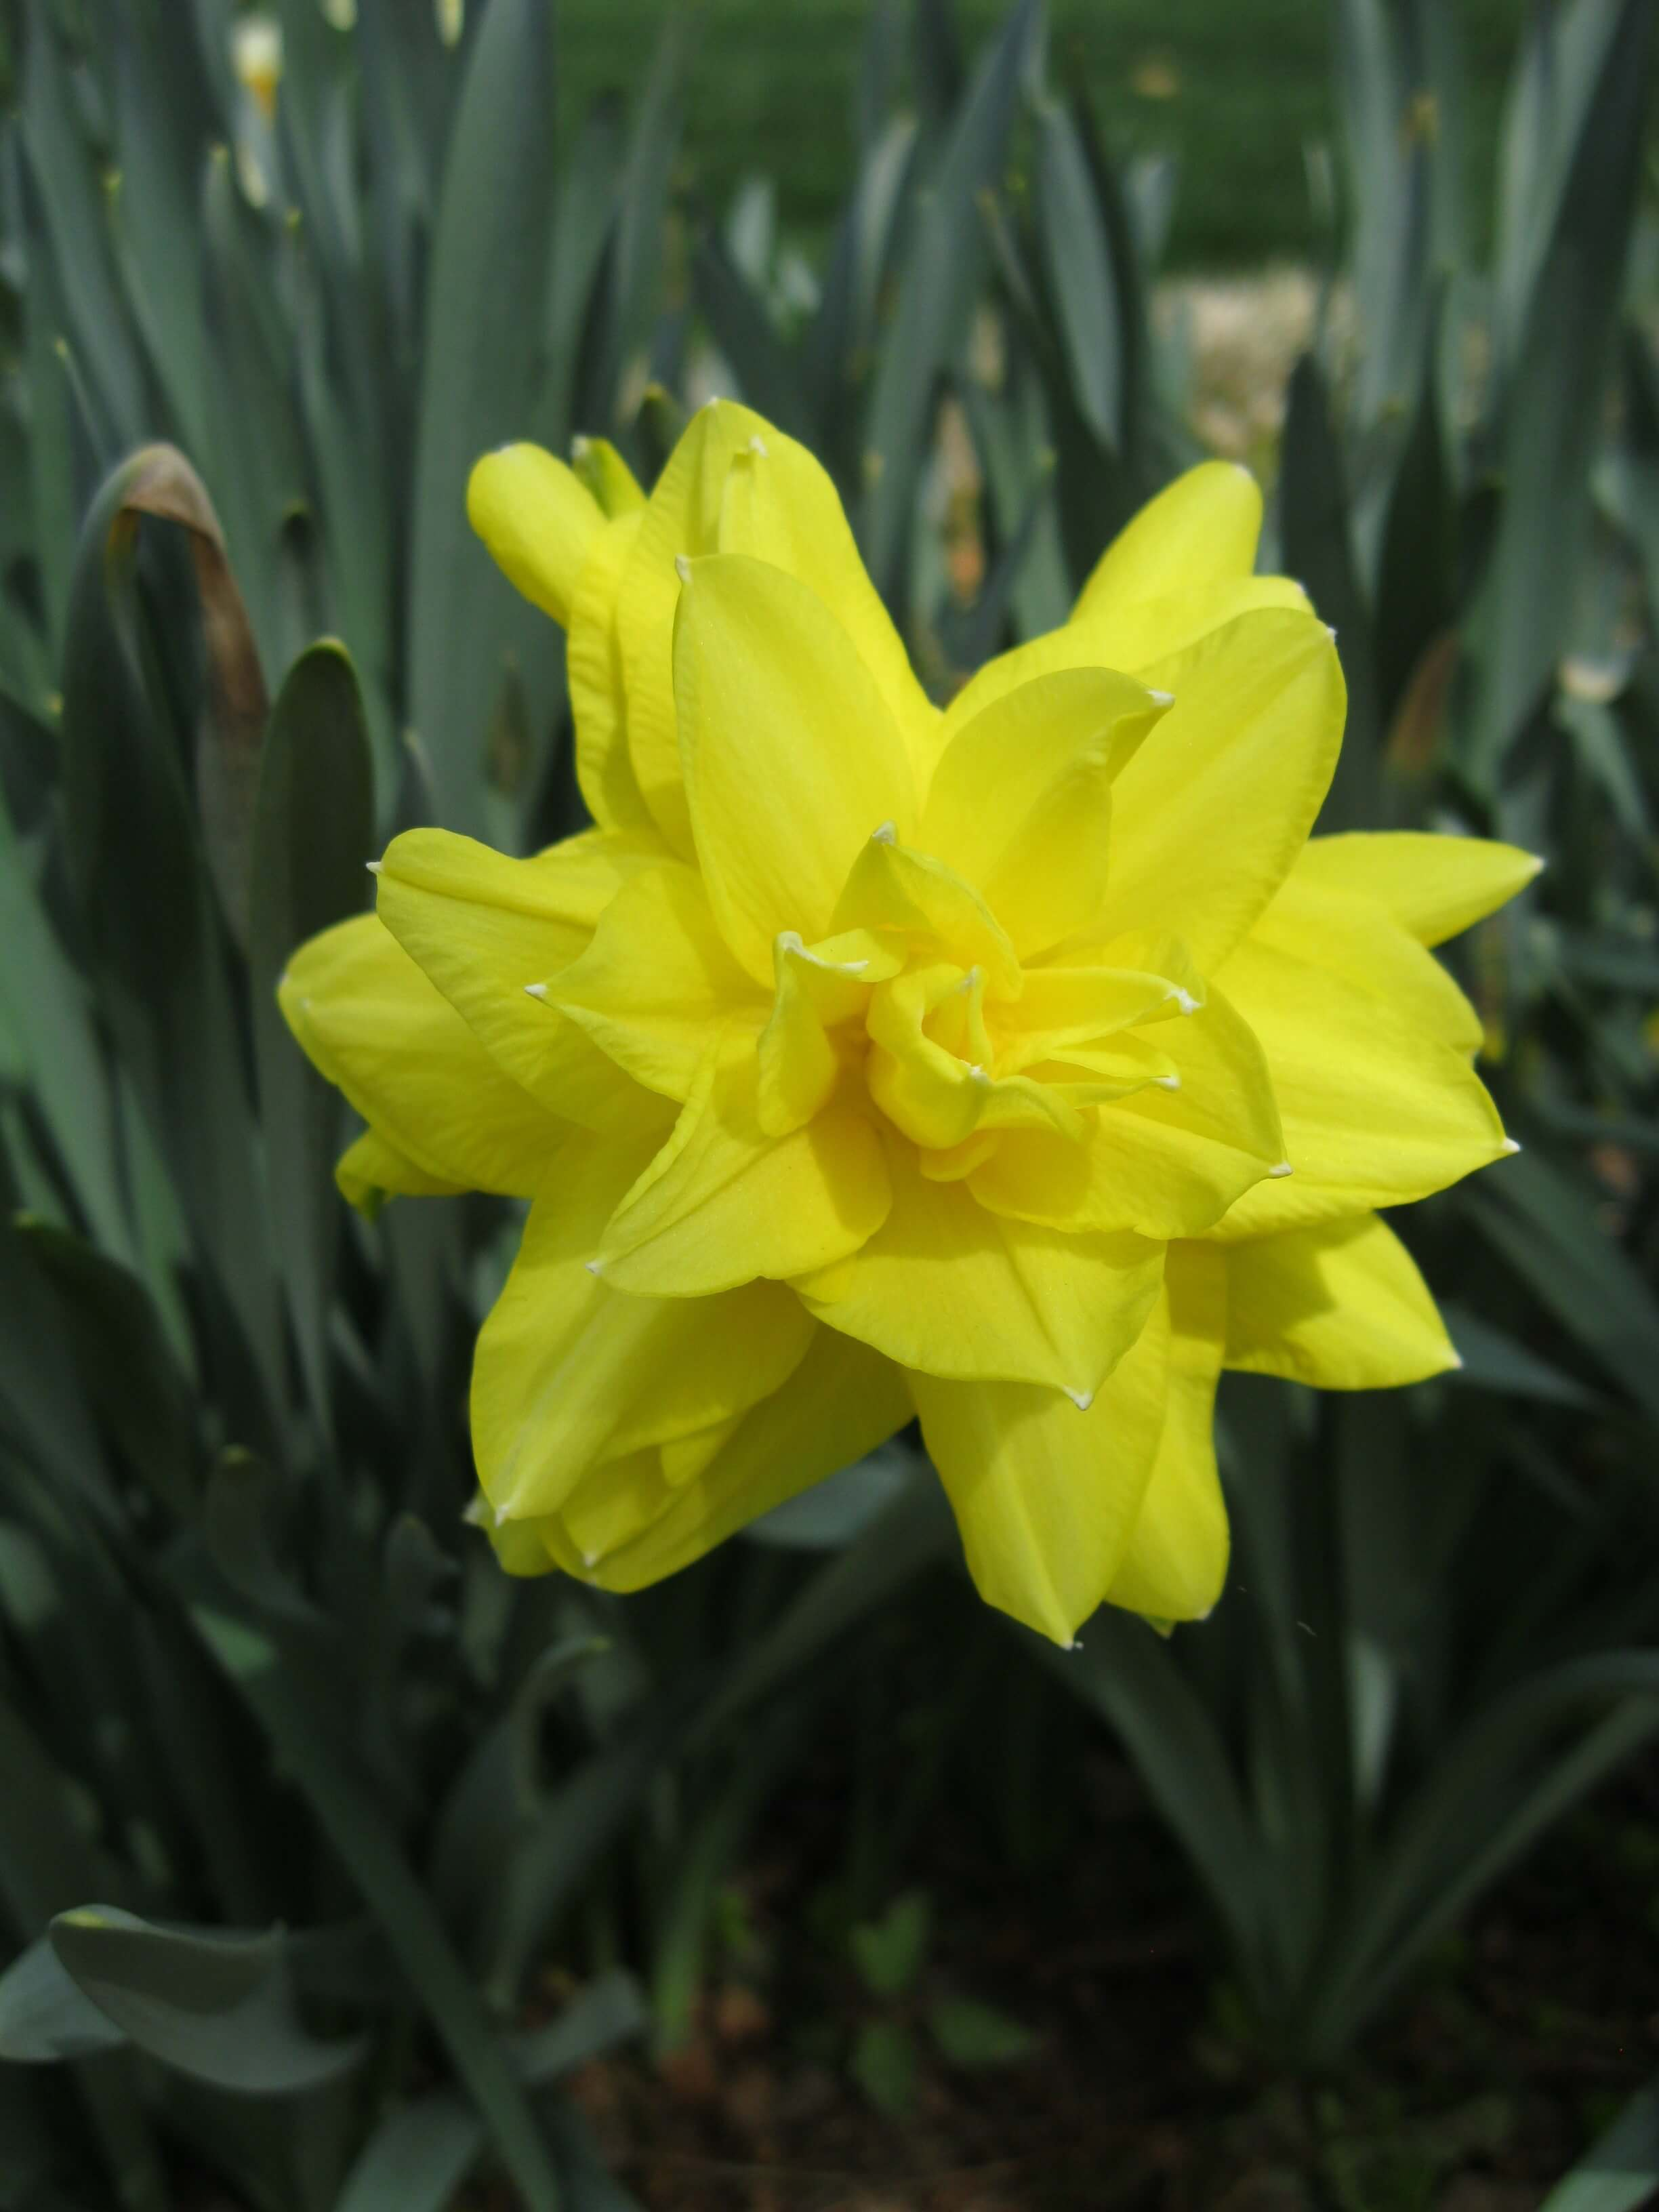 Daffodils in the Waypoint House Garden